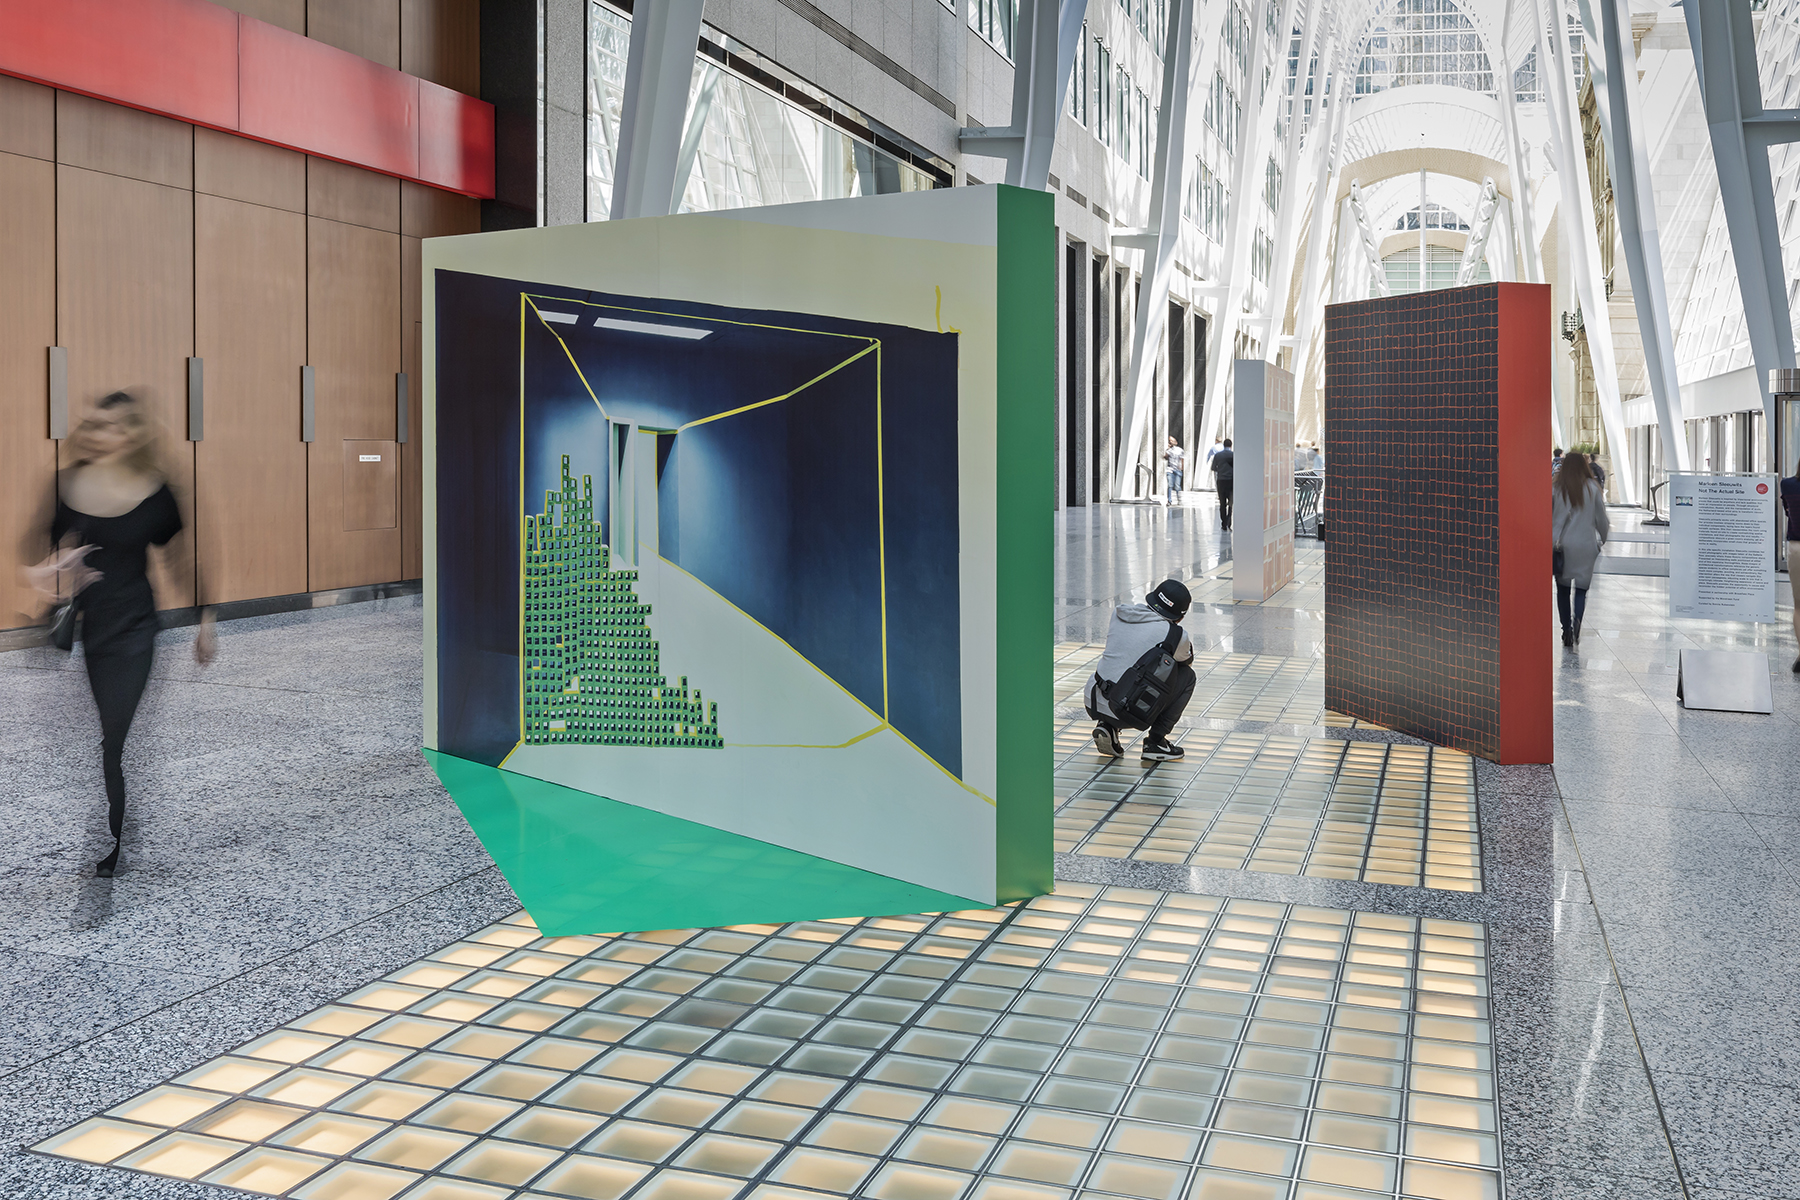 Marleen Sleeuwits, Not The Actual Site, Installation view at Brookfield Place. 2018. Photo by Toni Hafkenscheid